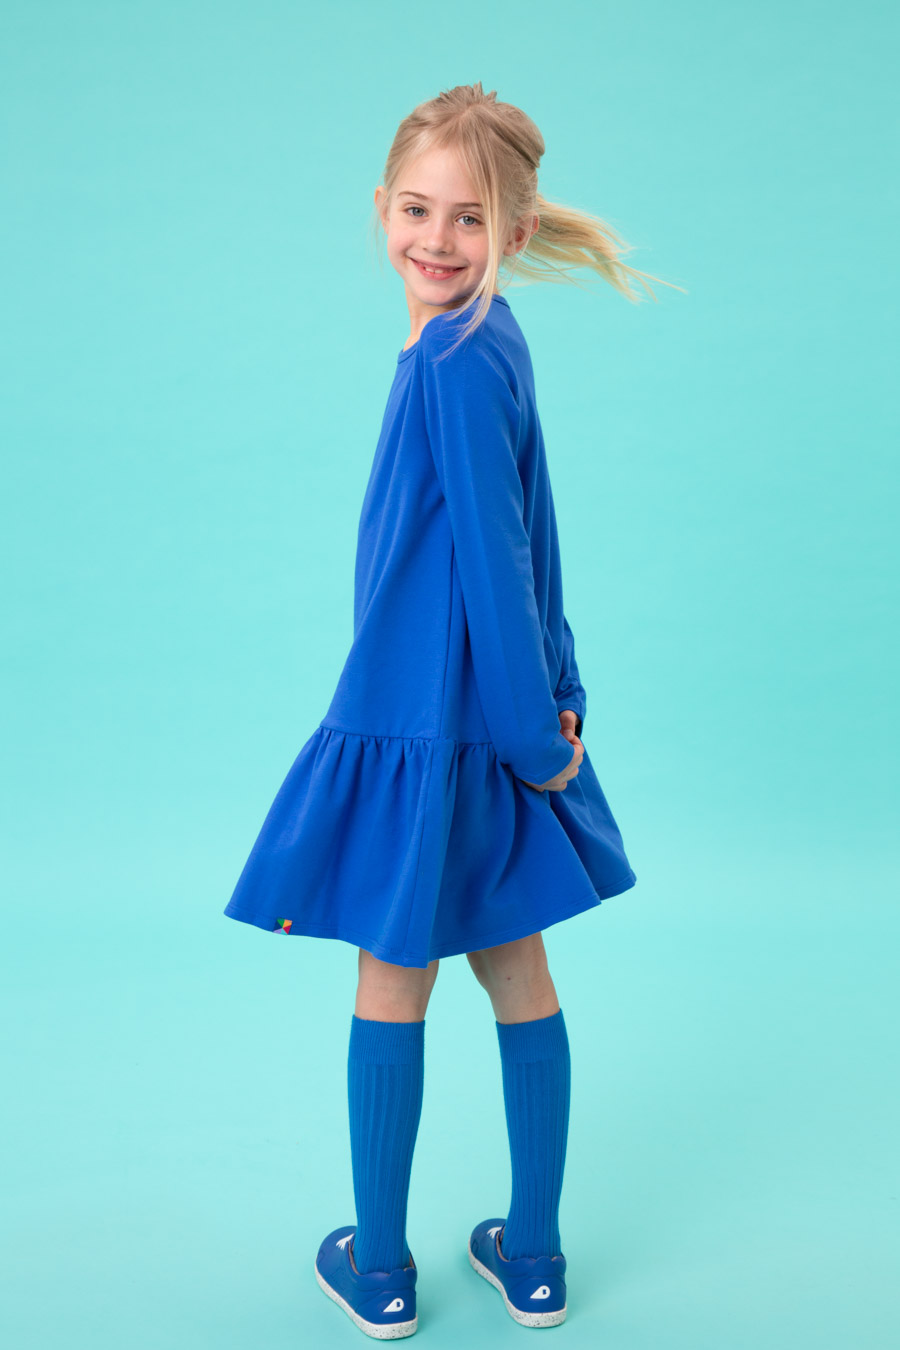 kids in colourful garments against colorful backgrounds with color props in a campaign for kids fashion brand My Basic